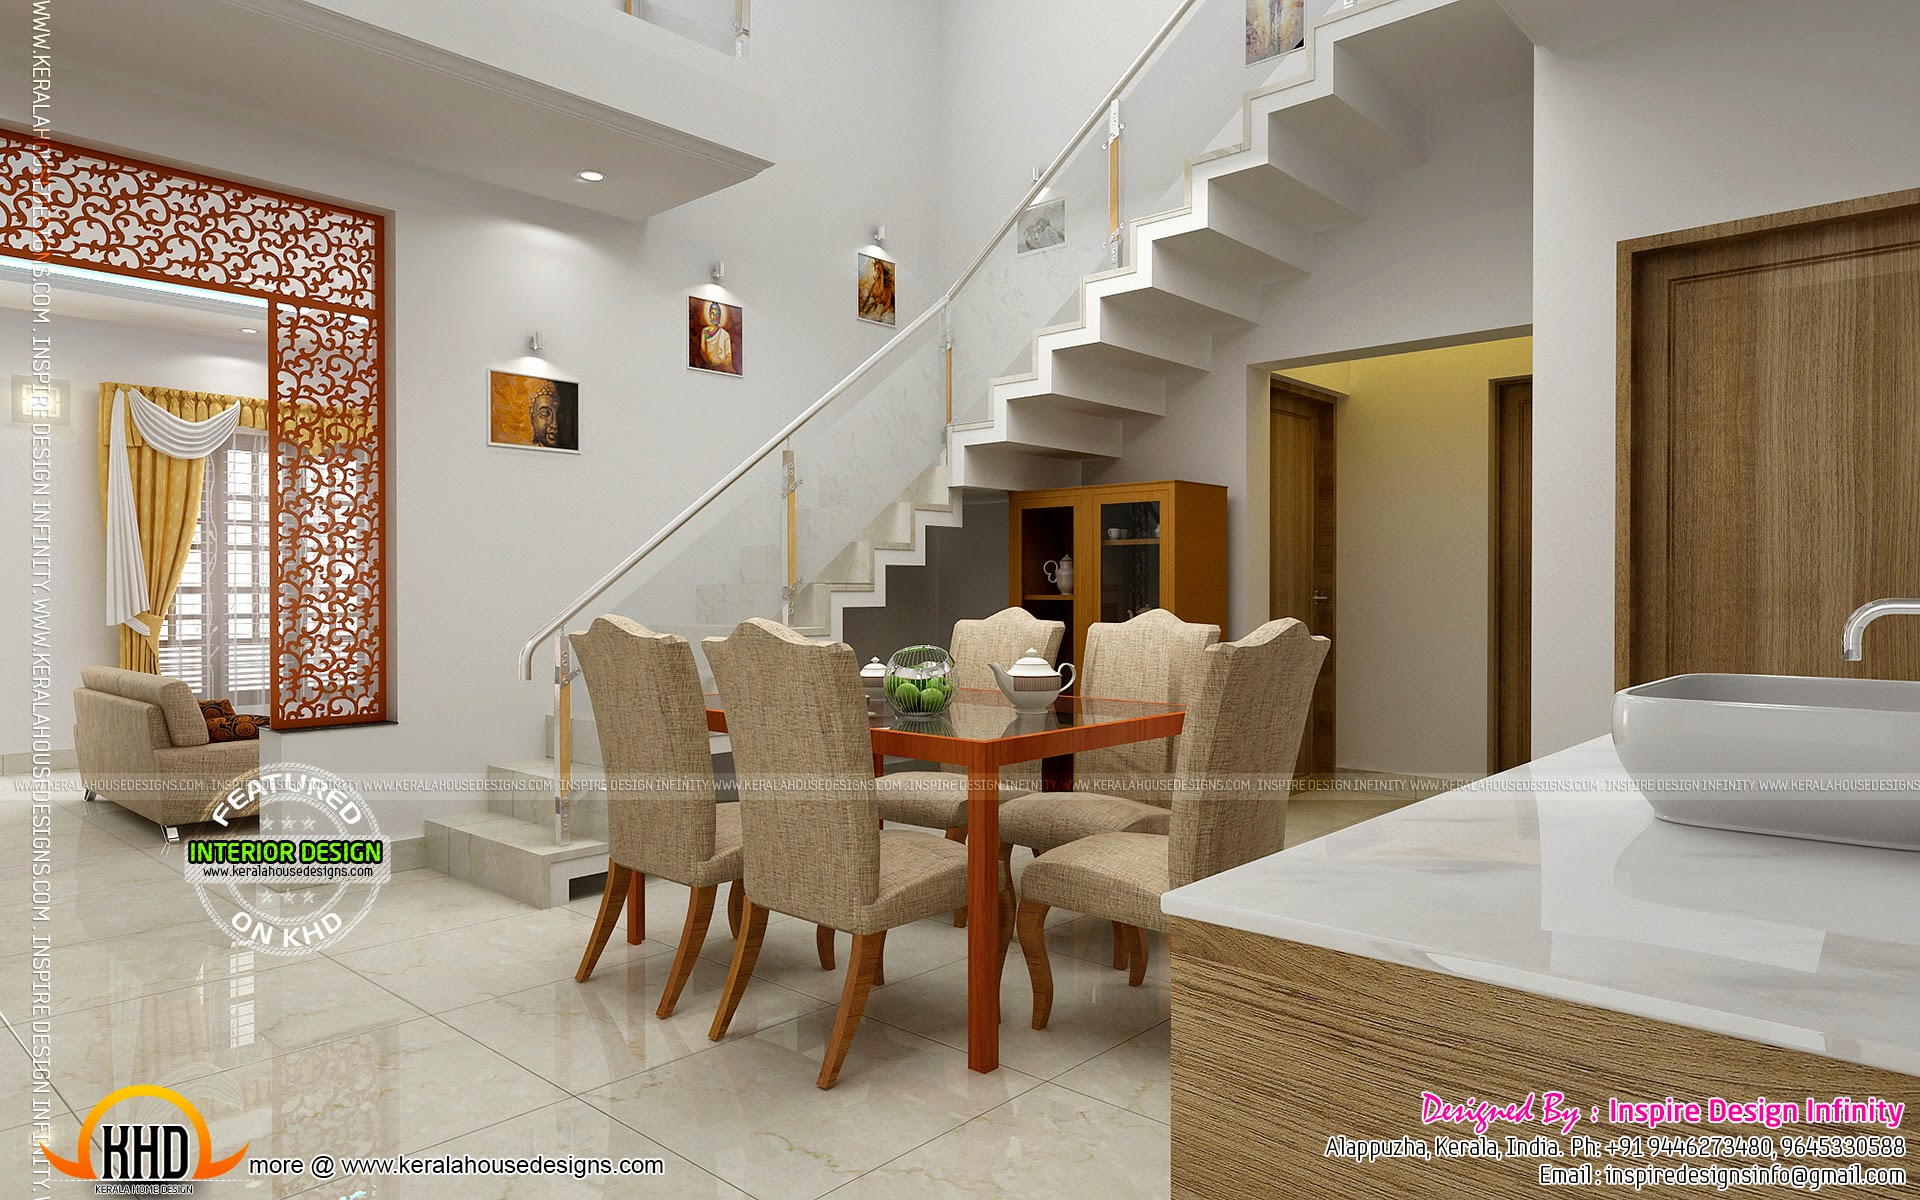 Dining room designs kerala home design and floor plans for Simple dining hall design